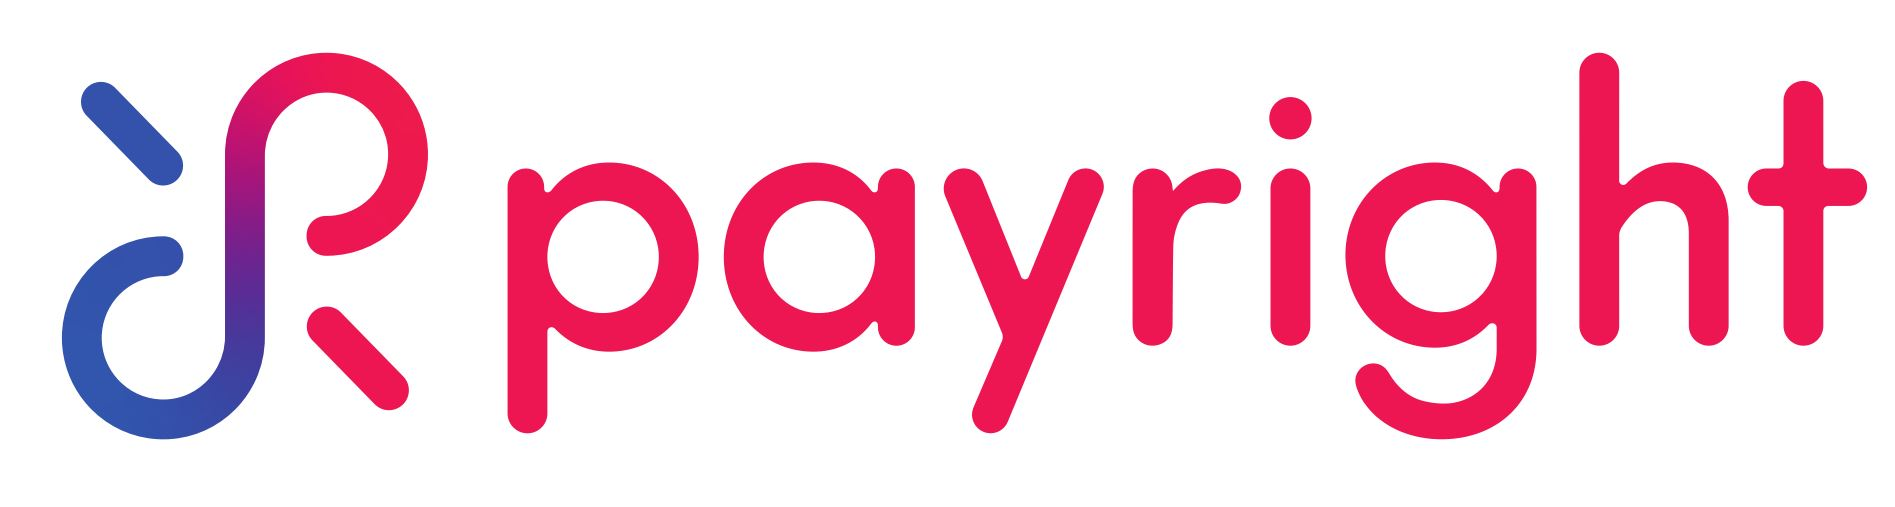 CORPORATE LOGO FOR PAYRIGHT